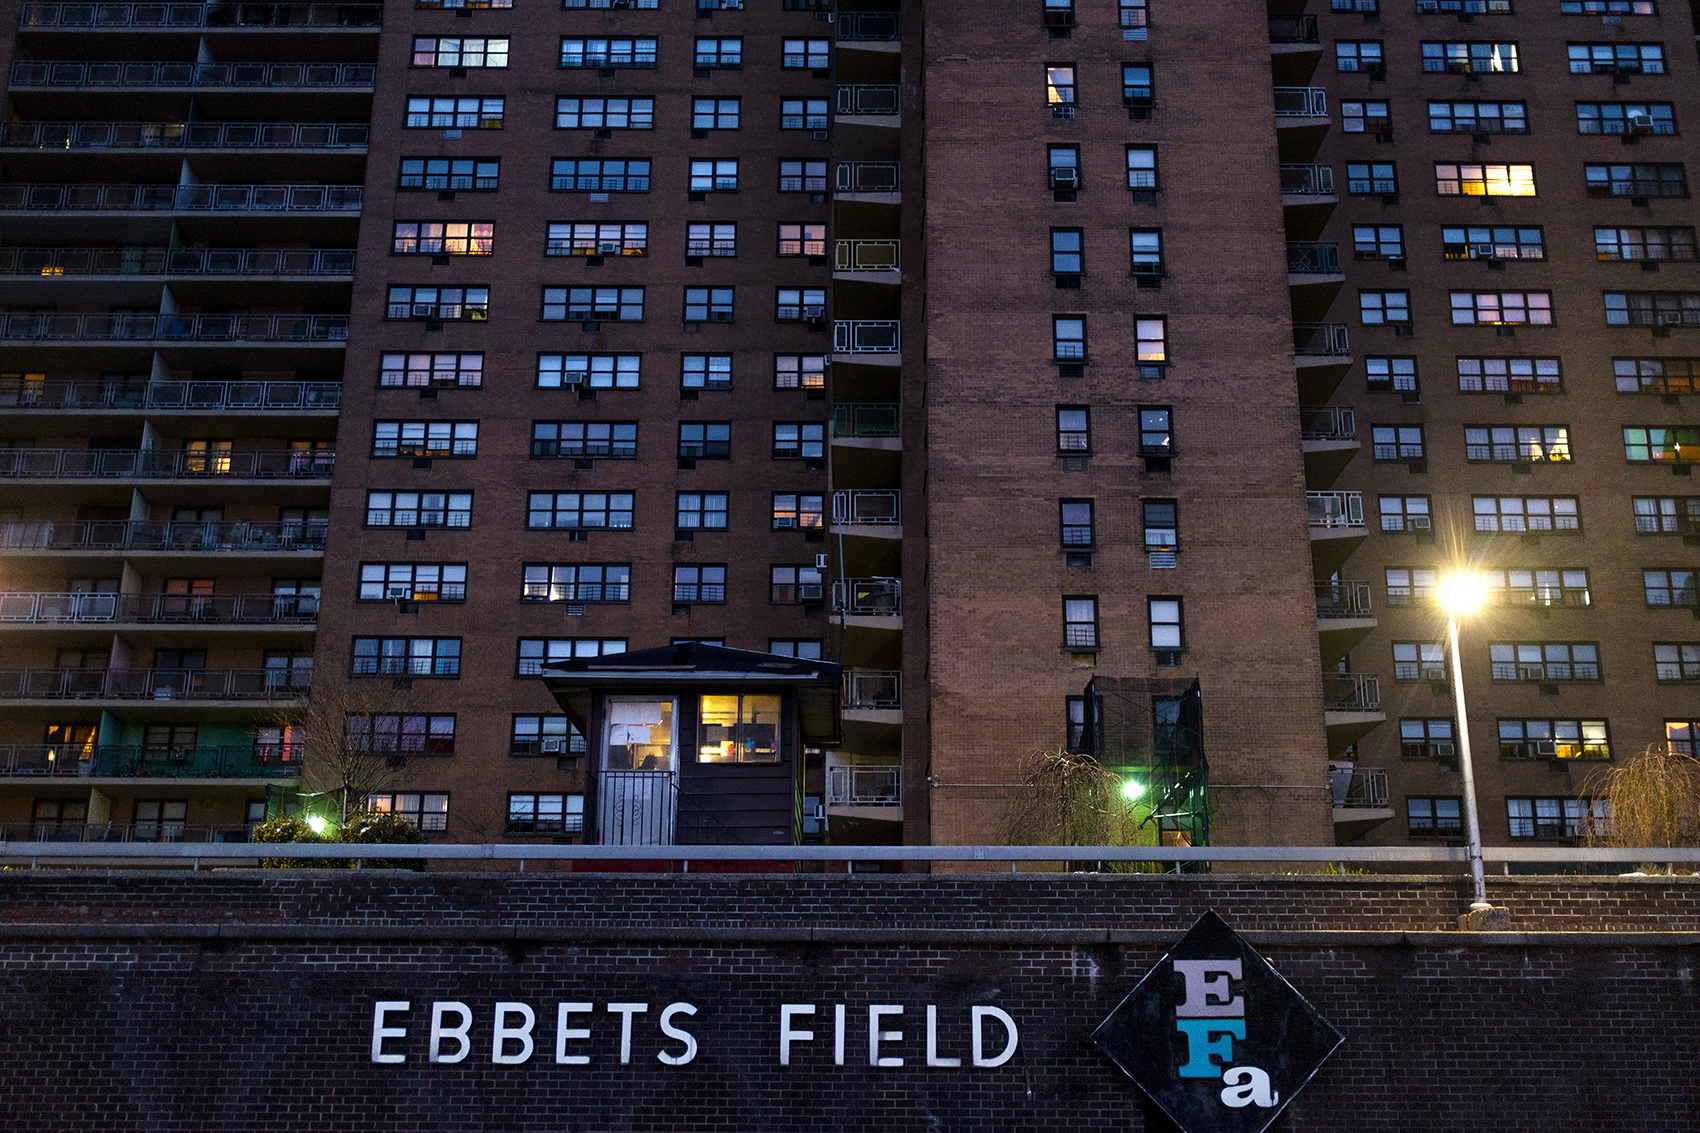 Named after the former site of the Brooklyn Dodgers' baseball stadium, today Ebbets Fields is home to hundreds of lower-income African-American and immigrant families.